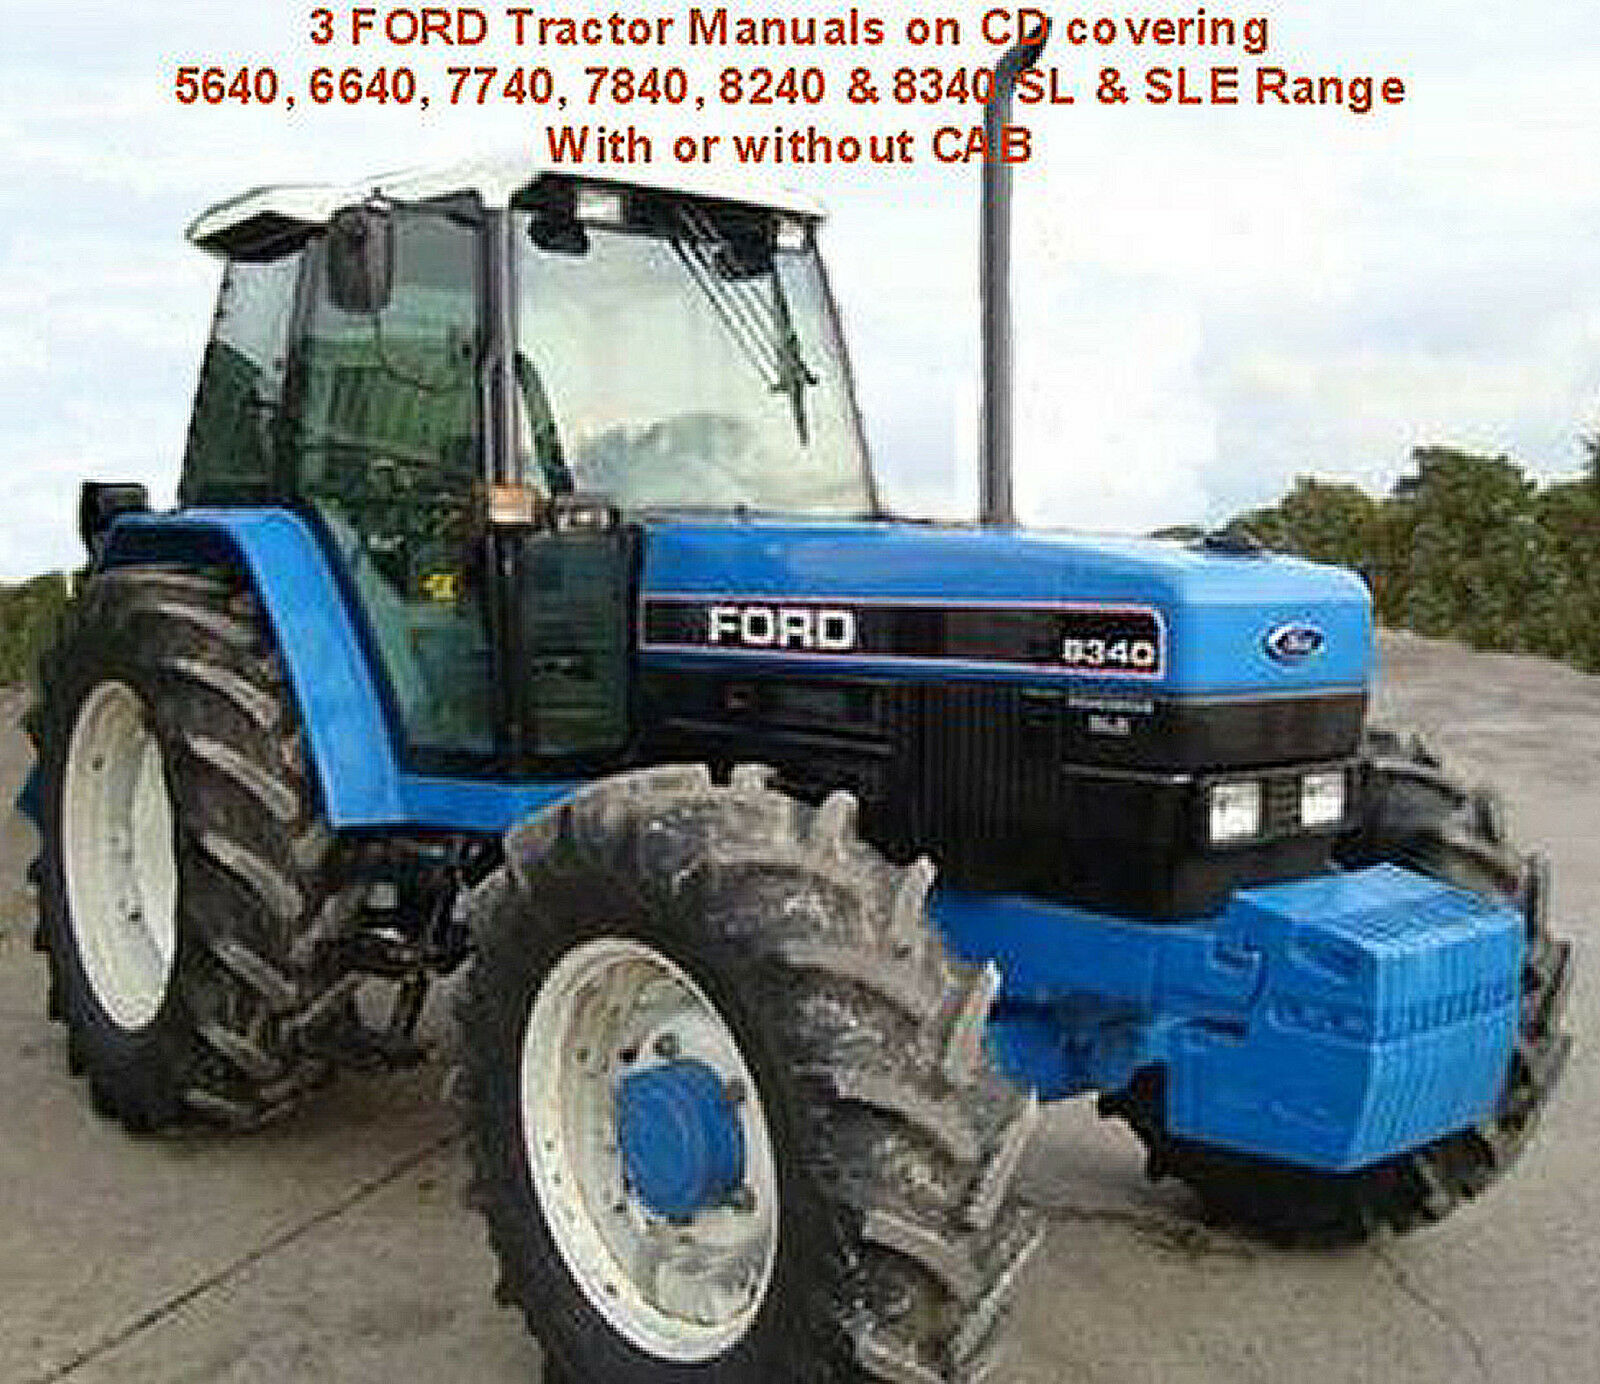 Wiring Diagram For Ford 5640 Tractor Detailed Diagrams 3930 3 6640 7740 7840 8240 8340 Manuals Cd Workshop